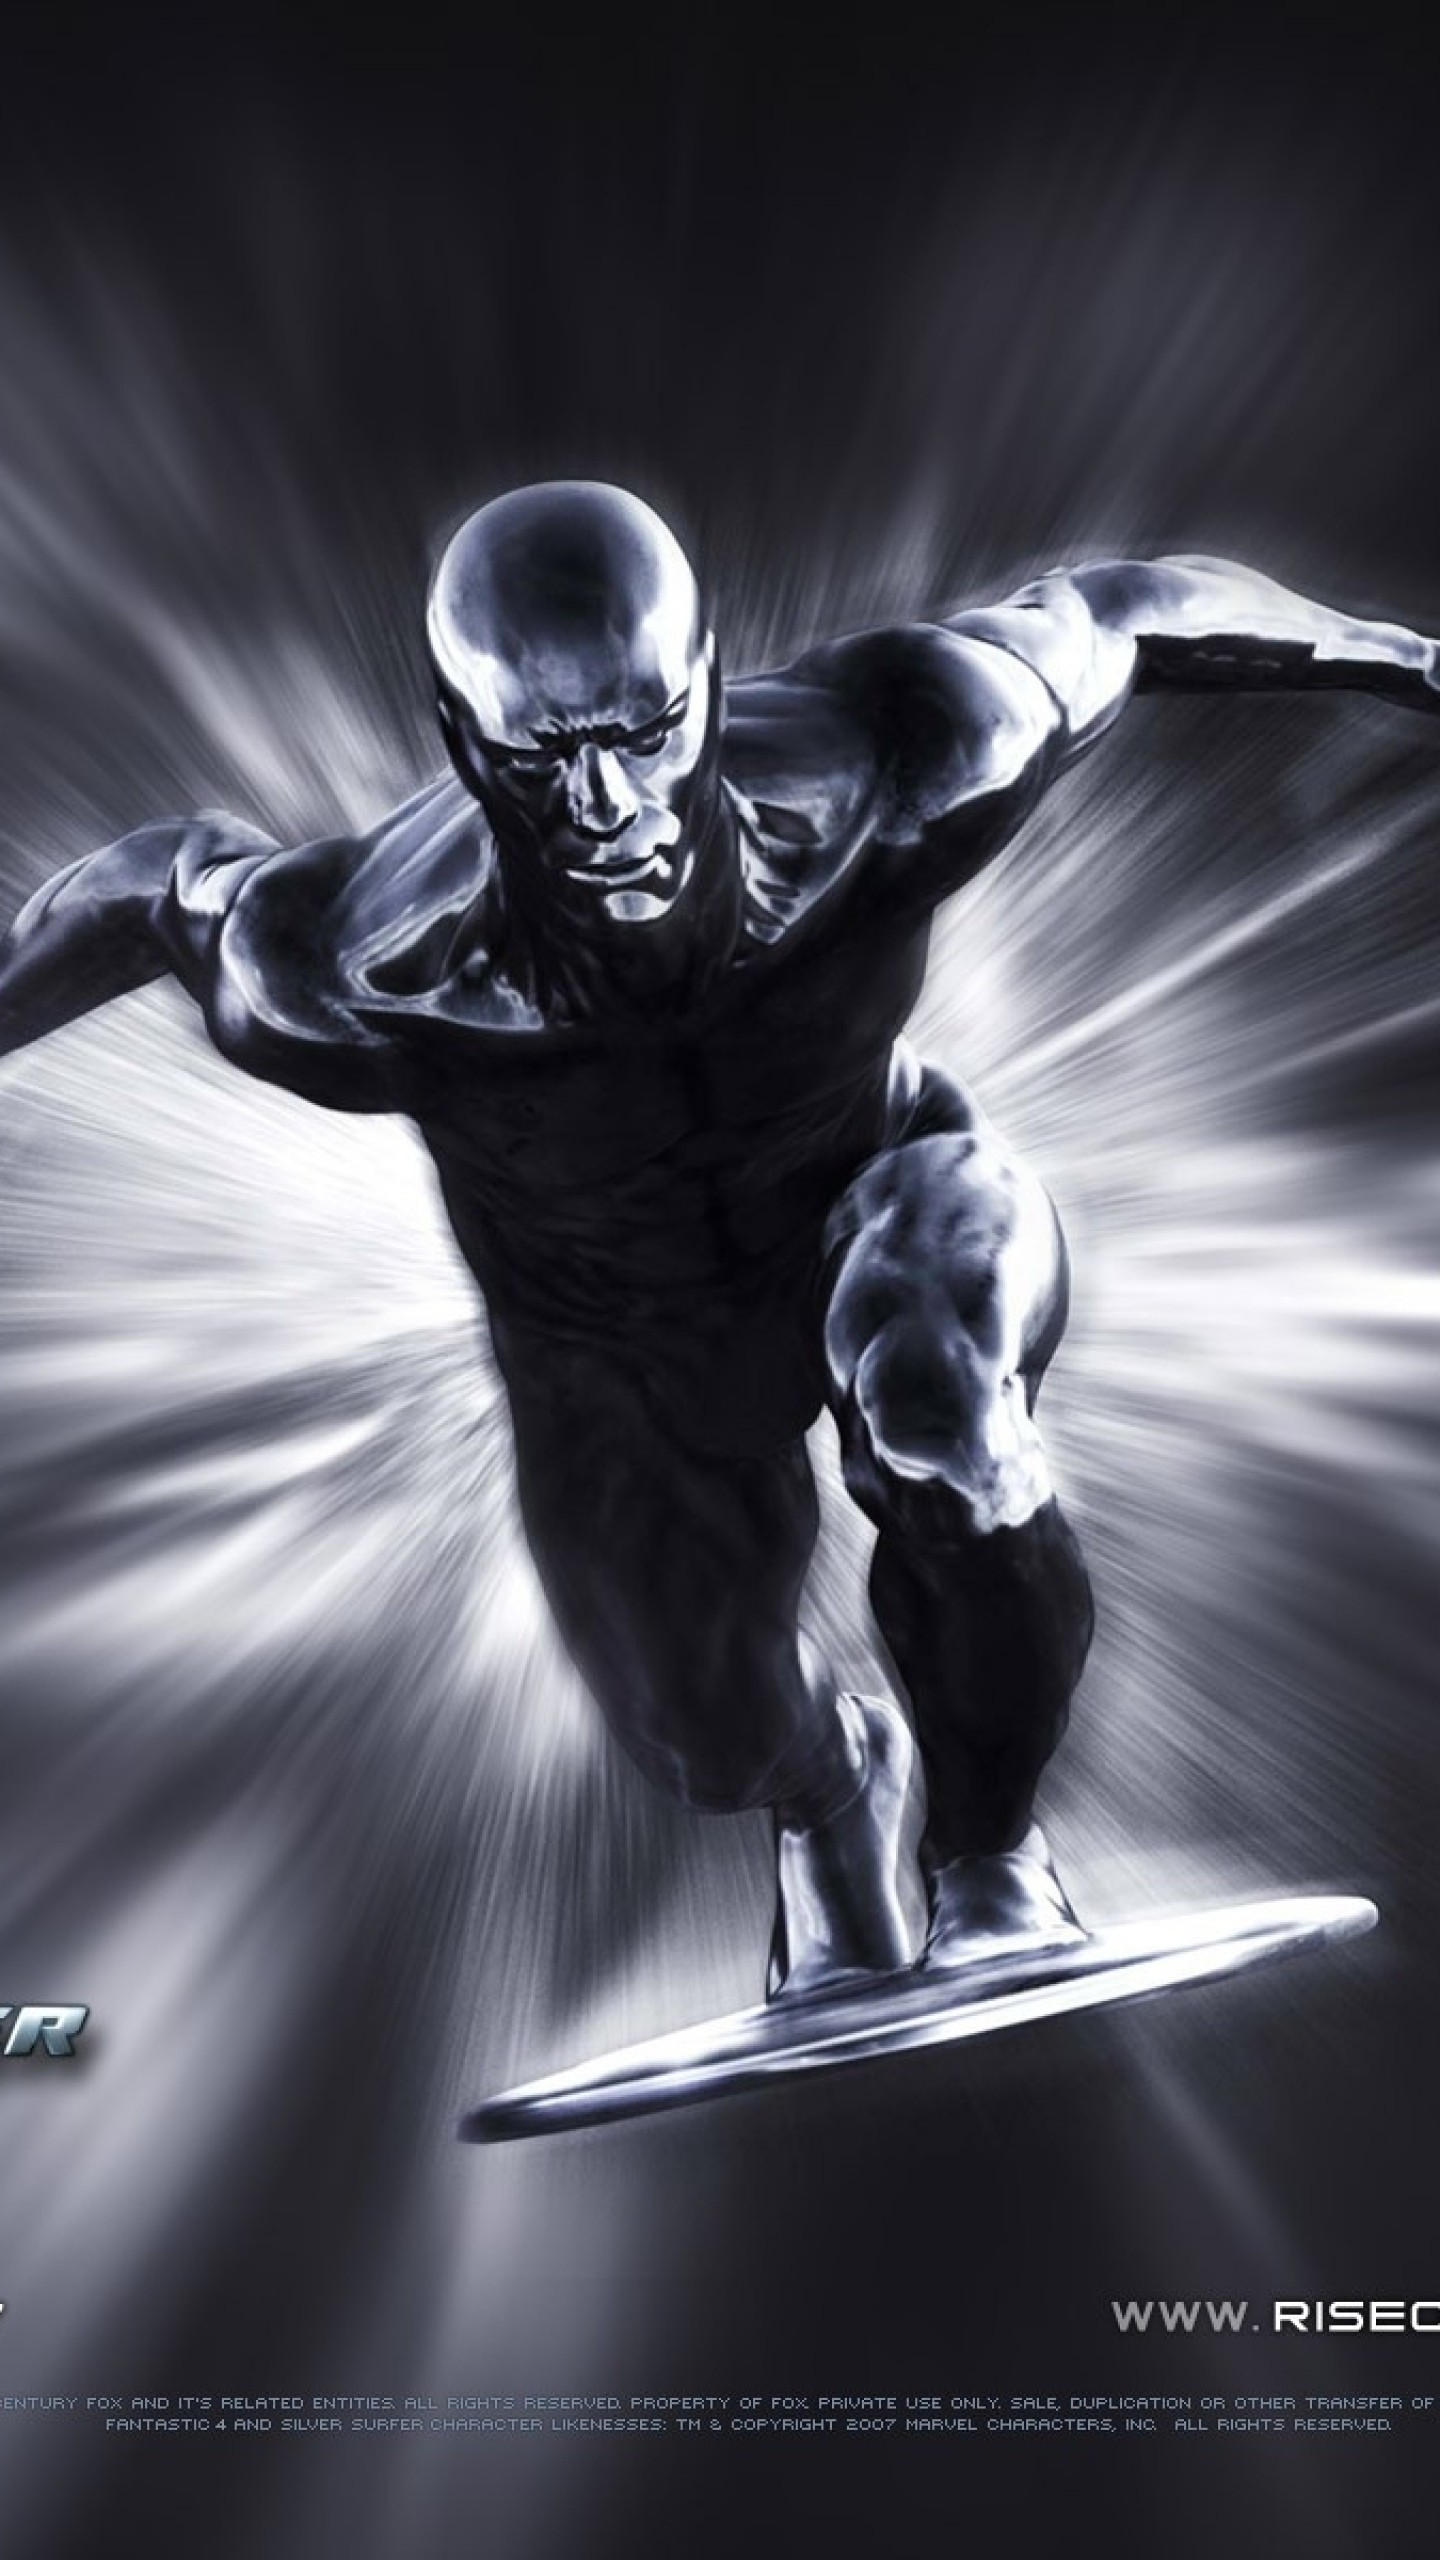 1440x2560  Wallpaper rise of the silver surfer, fantastic 4, silver surfer,  surfer,